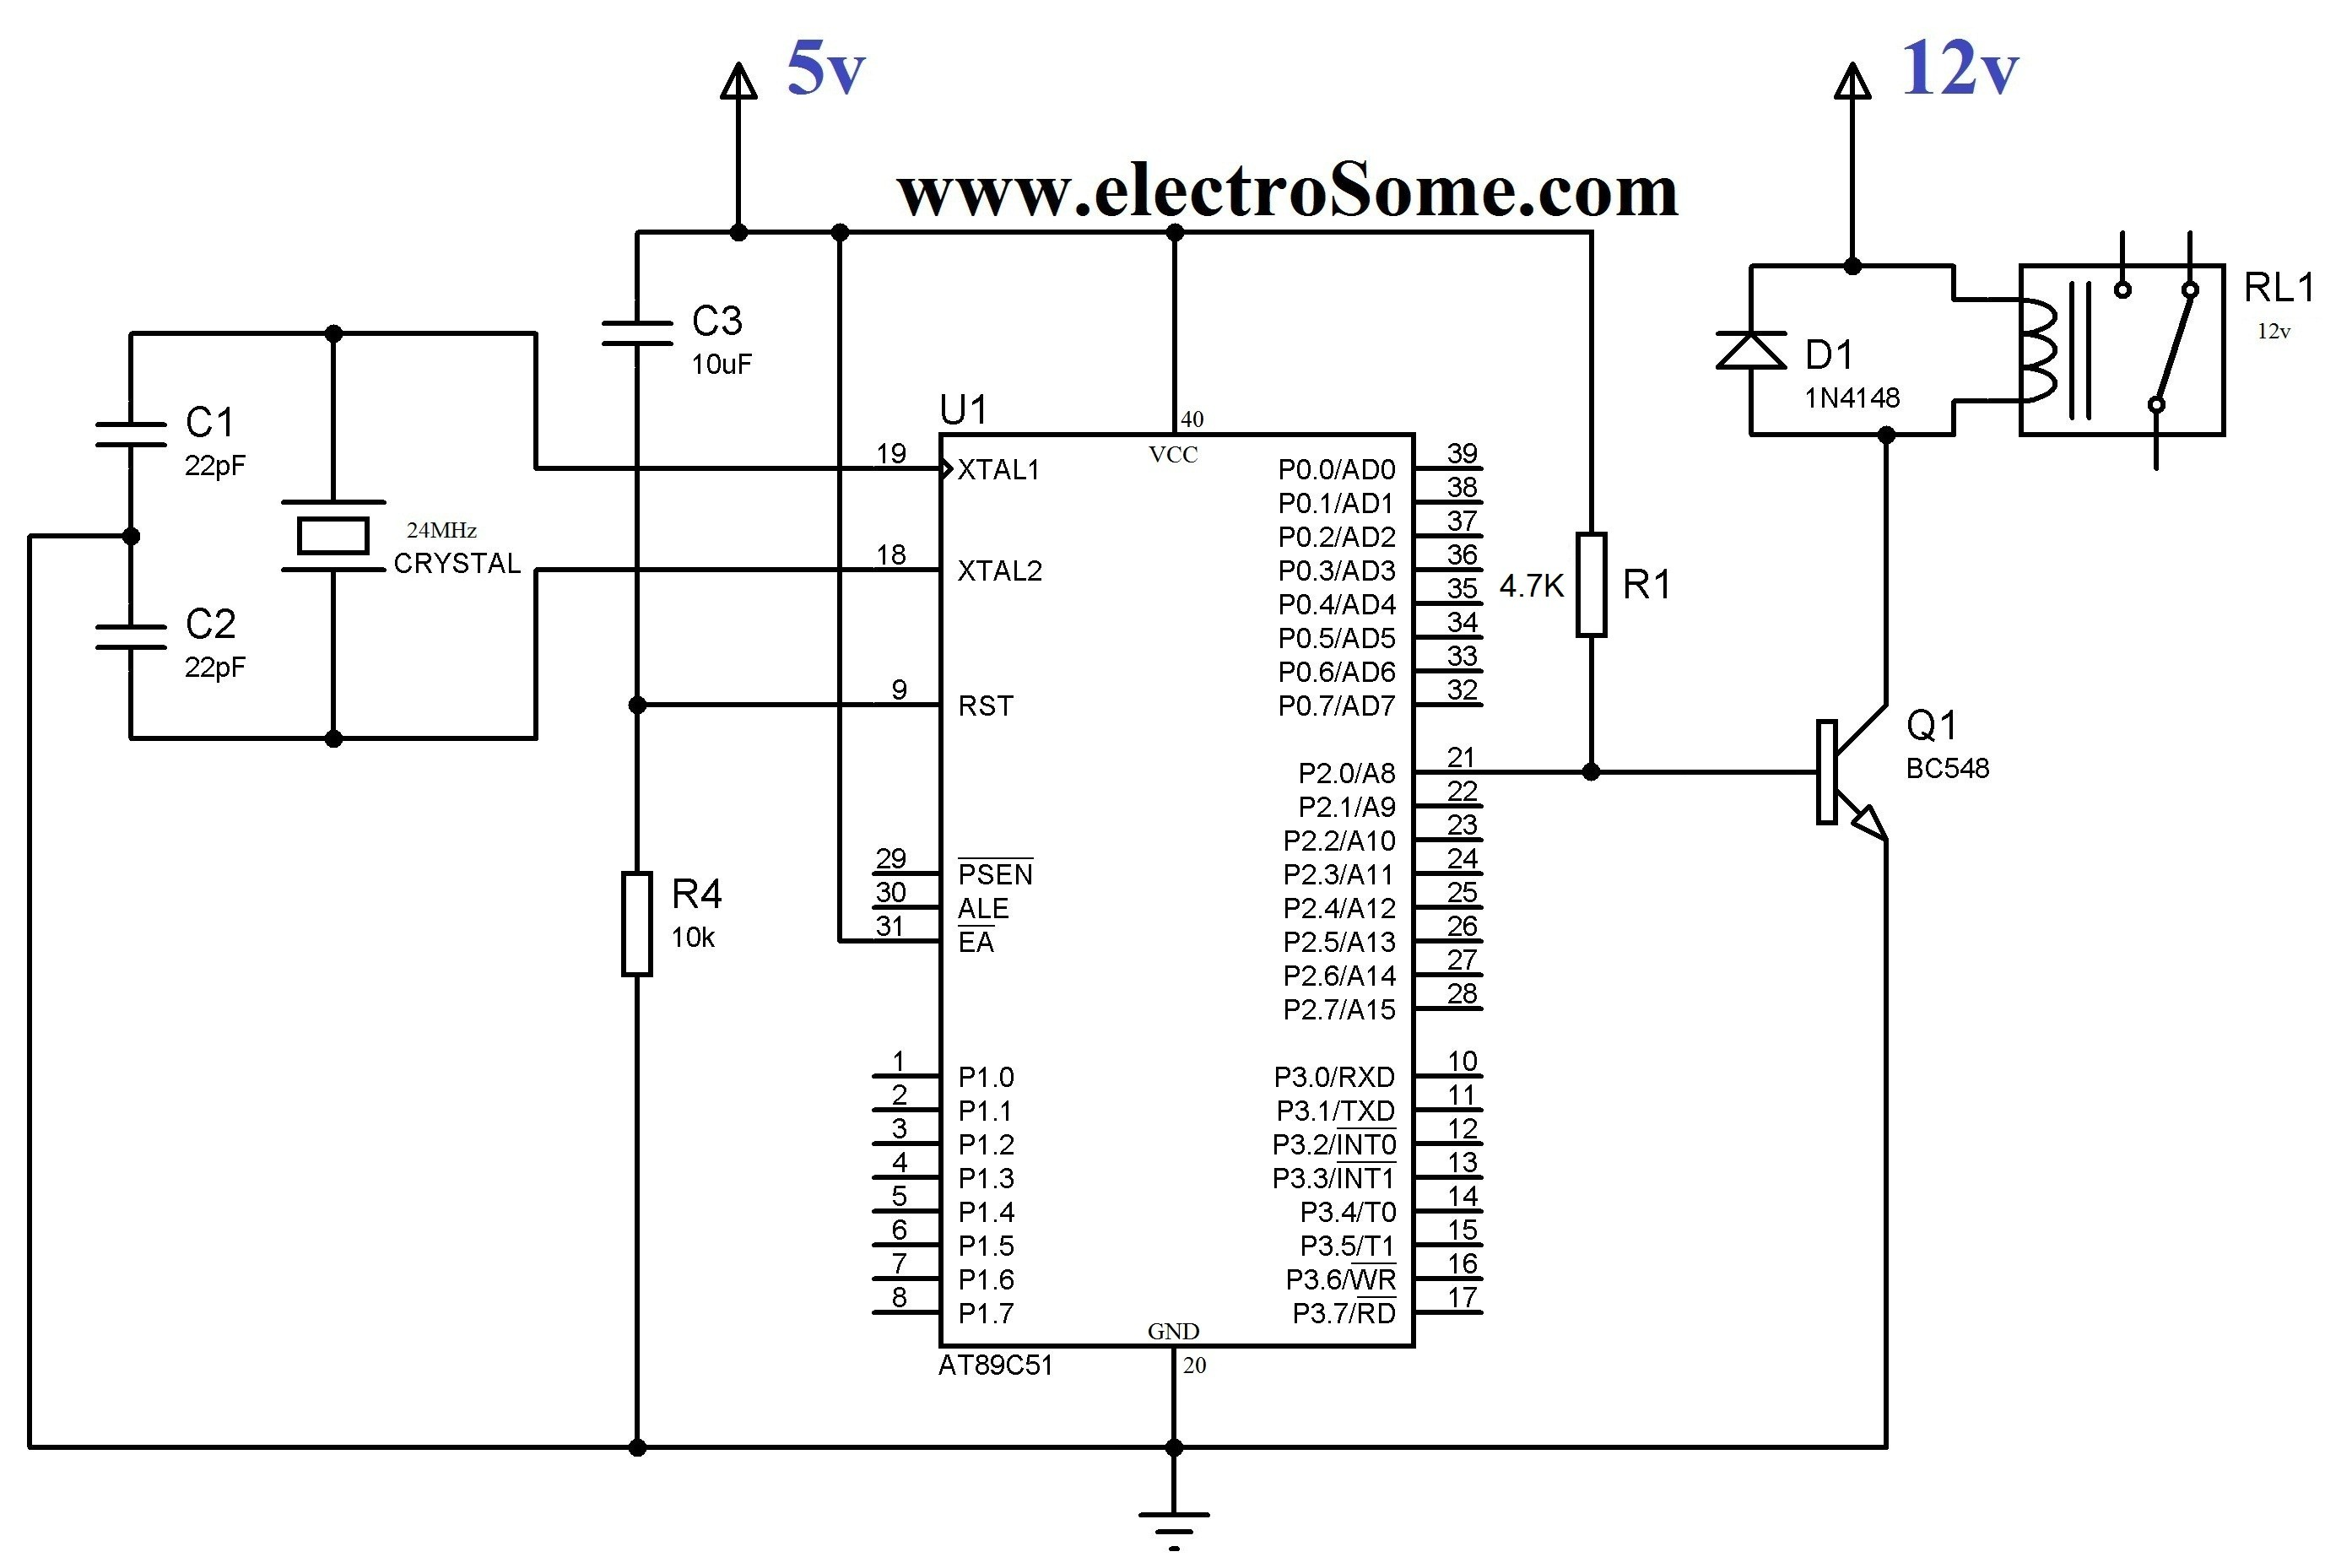 12 Volt Relay Wiring Diagram Interfacing Relay with Using Keil C at89c51 Transistor Circuit Of 12 Volt Relay Wiring Diagram